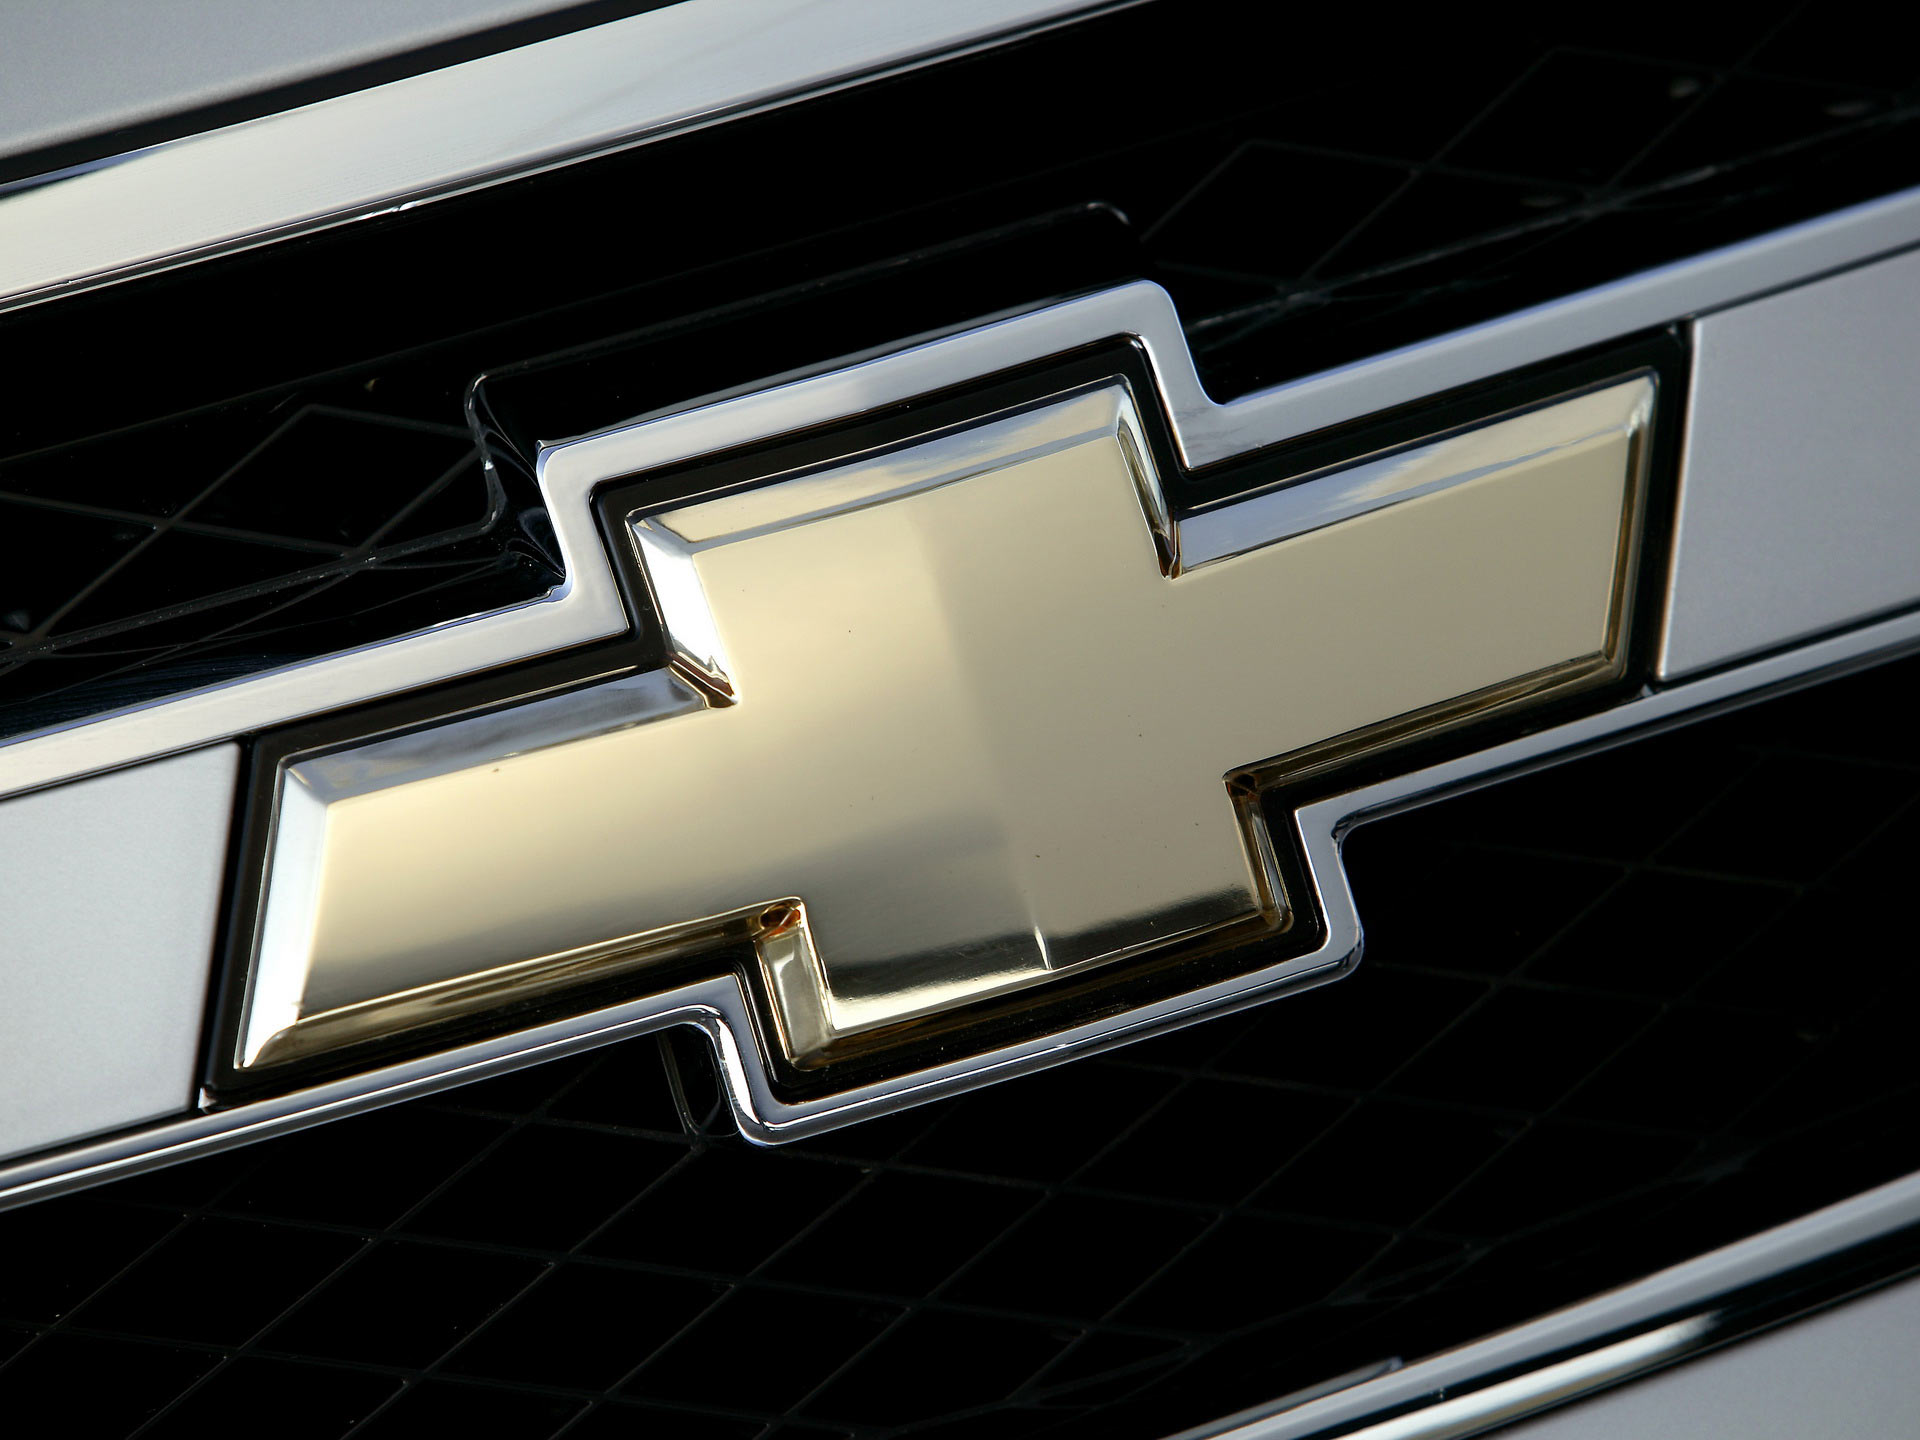 Chevy Logo Wallpaper 4377 Hd Wallpapers in Logos   Imagescicom 1920x1440